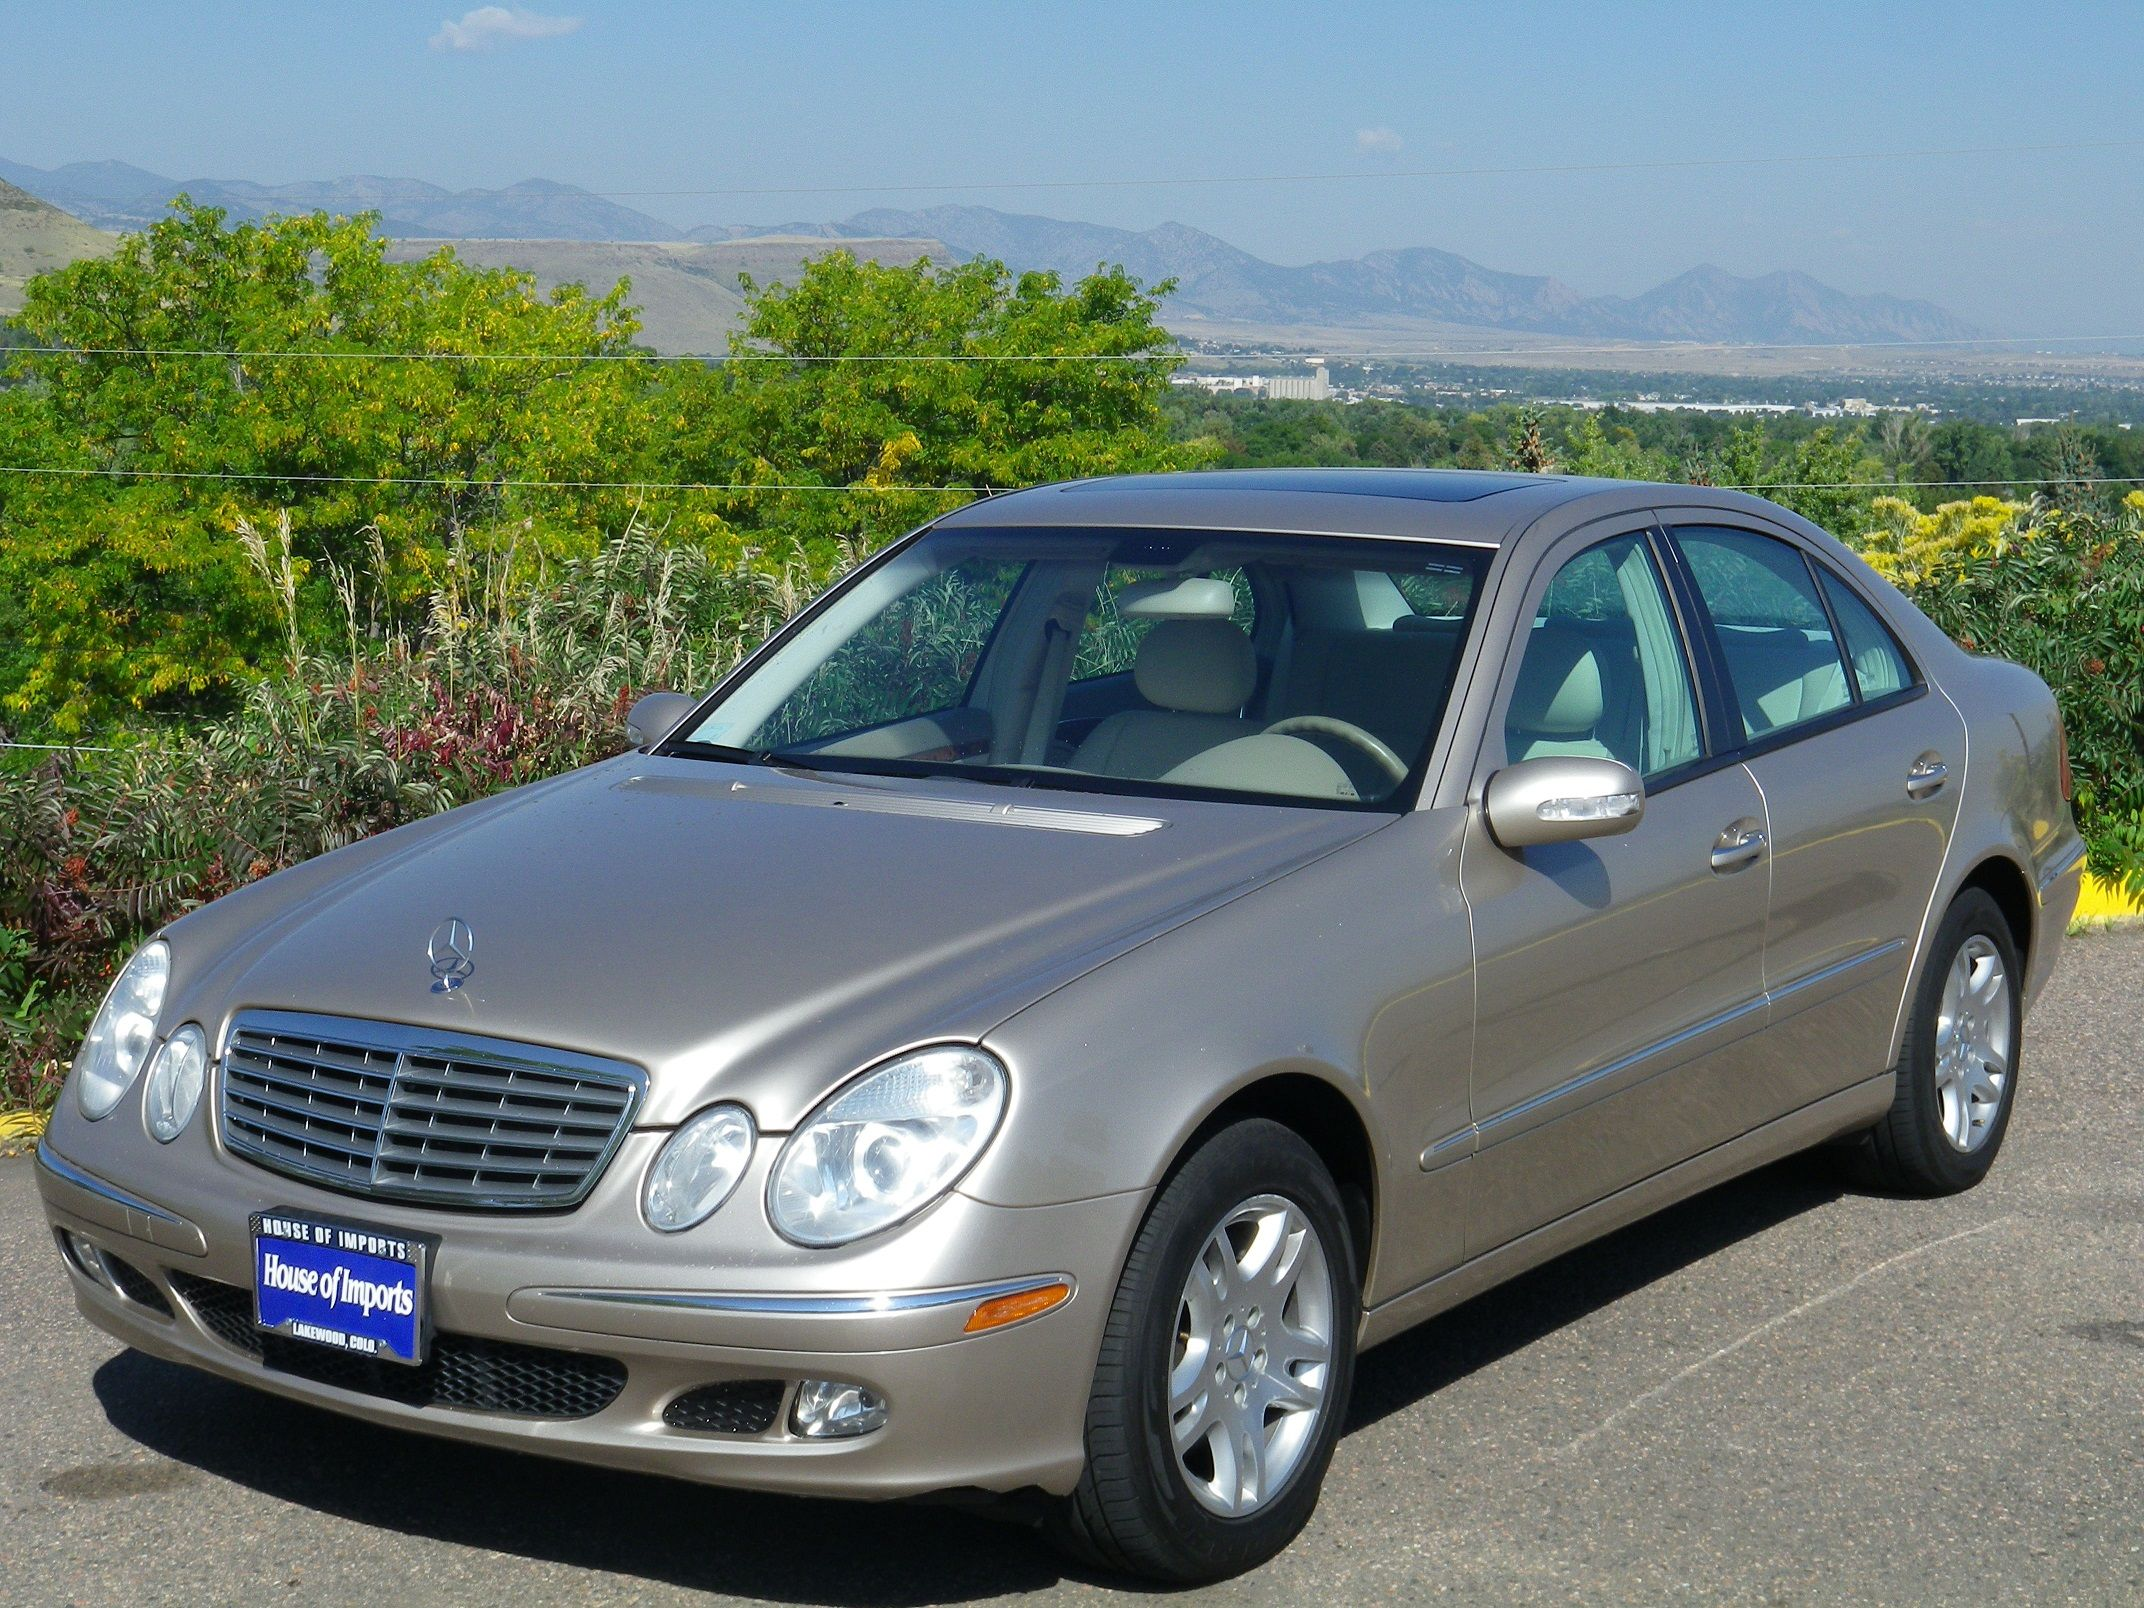 2004 mercedes benz e320 4 matic 103 035 miles v i n wdbuf82j44x153514 stock c450 desert silver metallic interior stone leather [ 2144 x 1608 Pixel ]